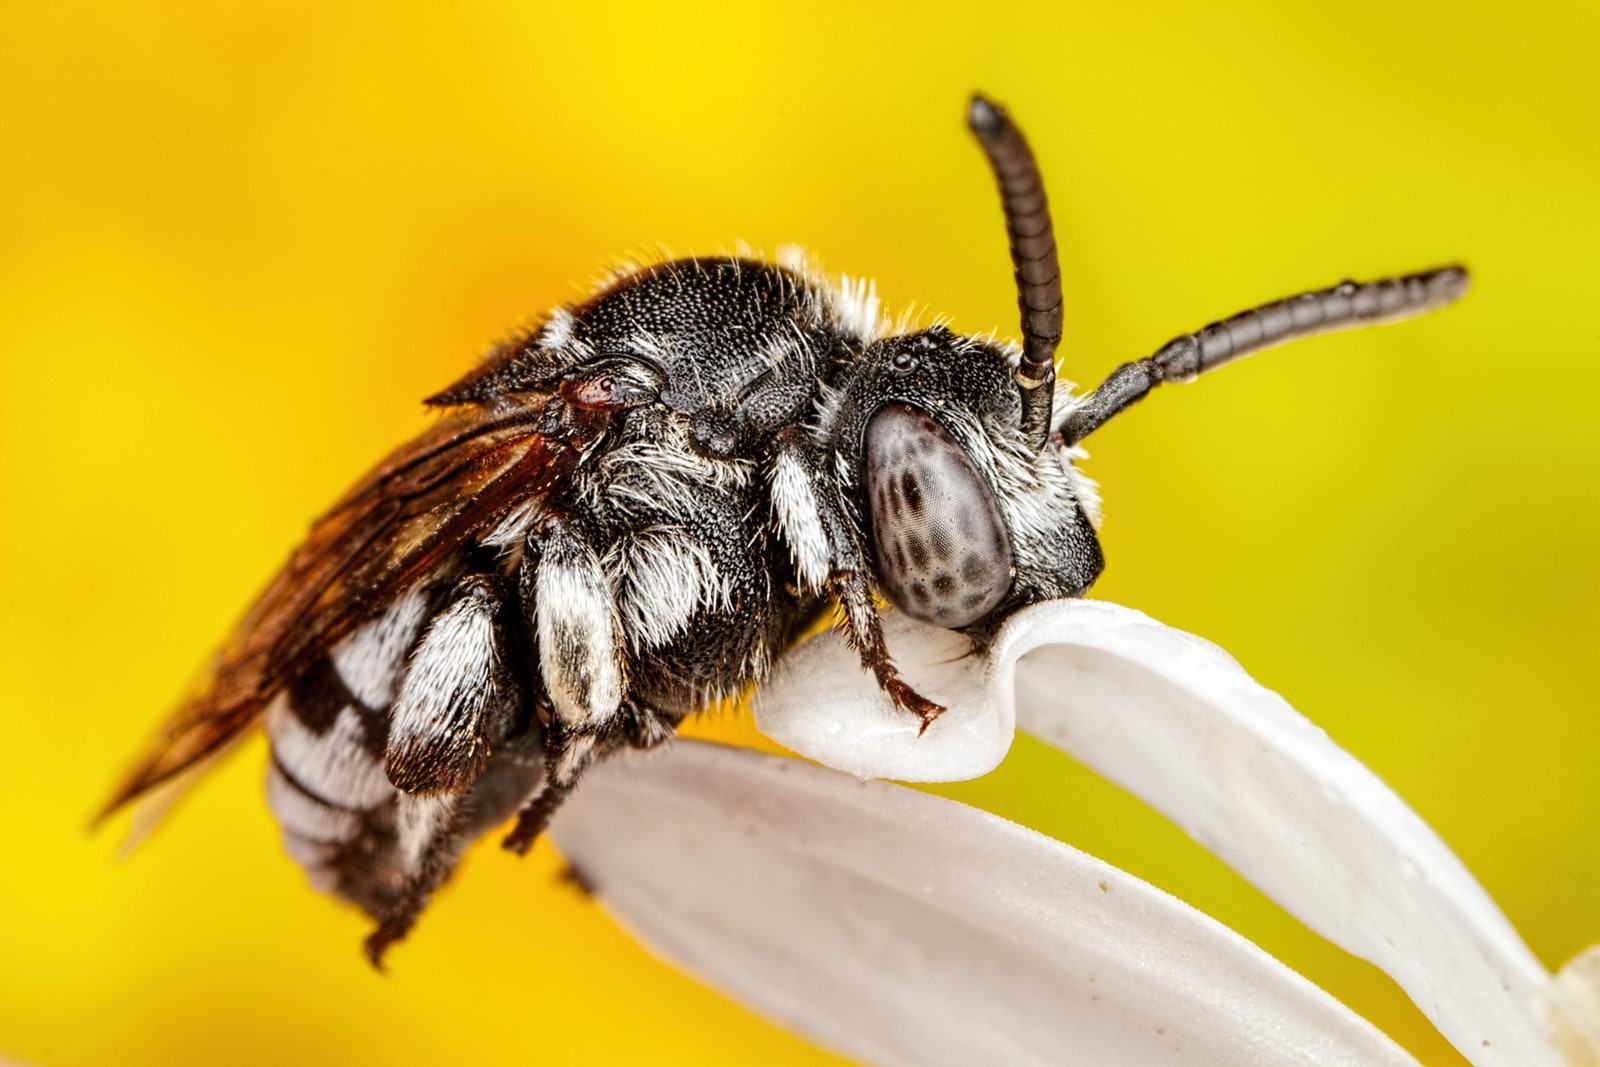 Cuckoo Bee - By John Kimble